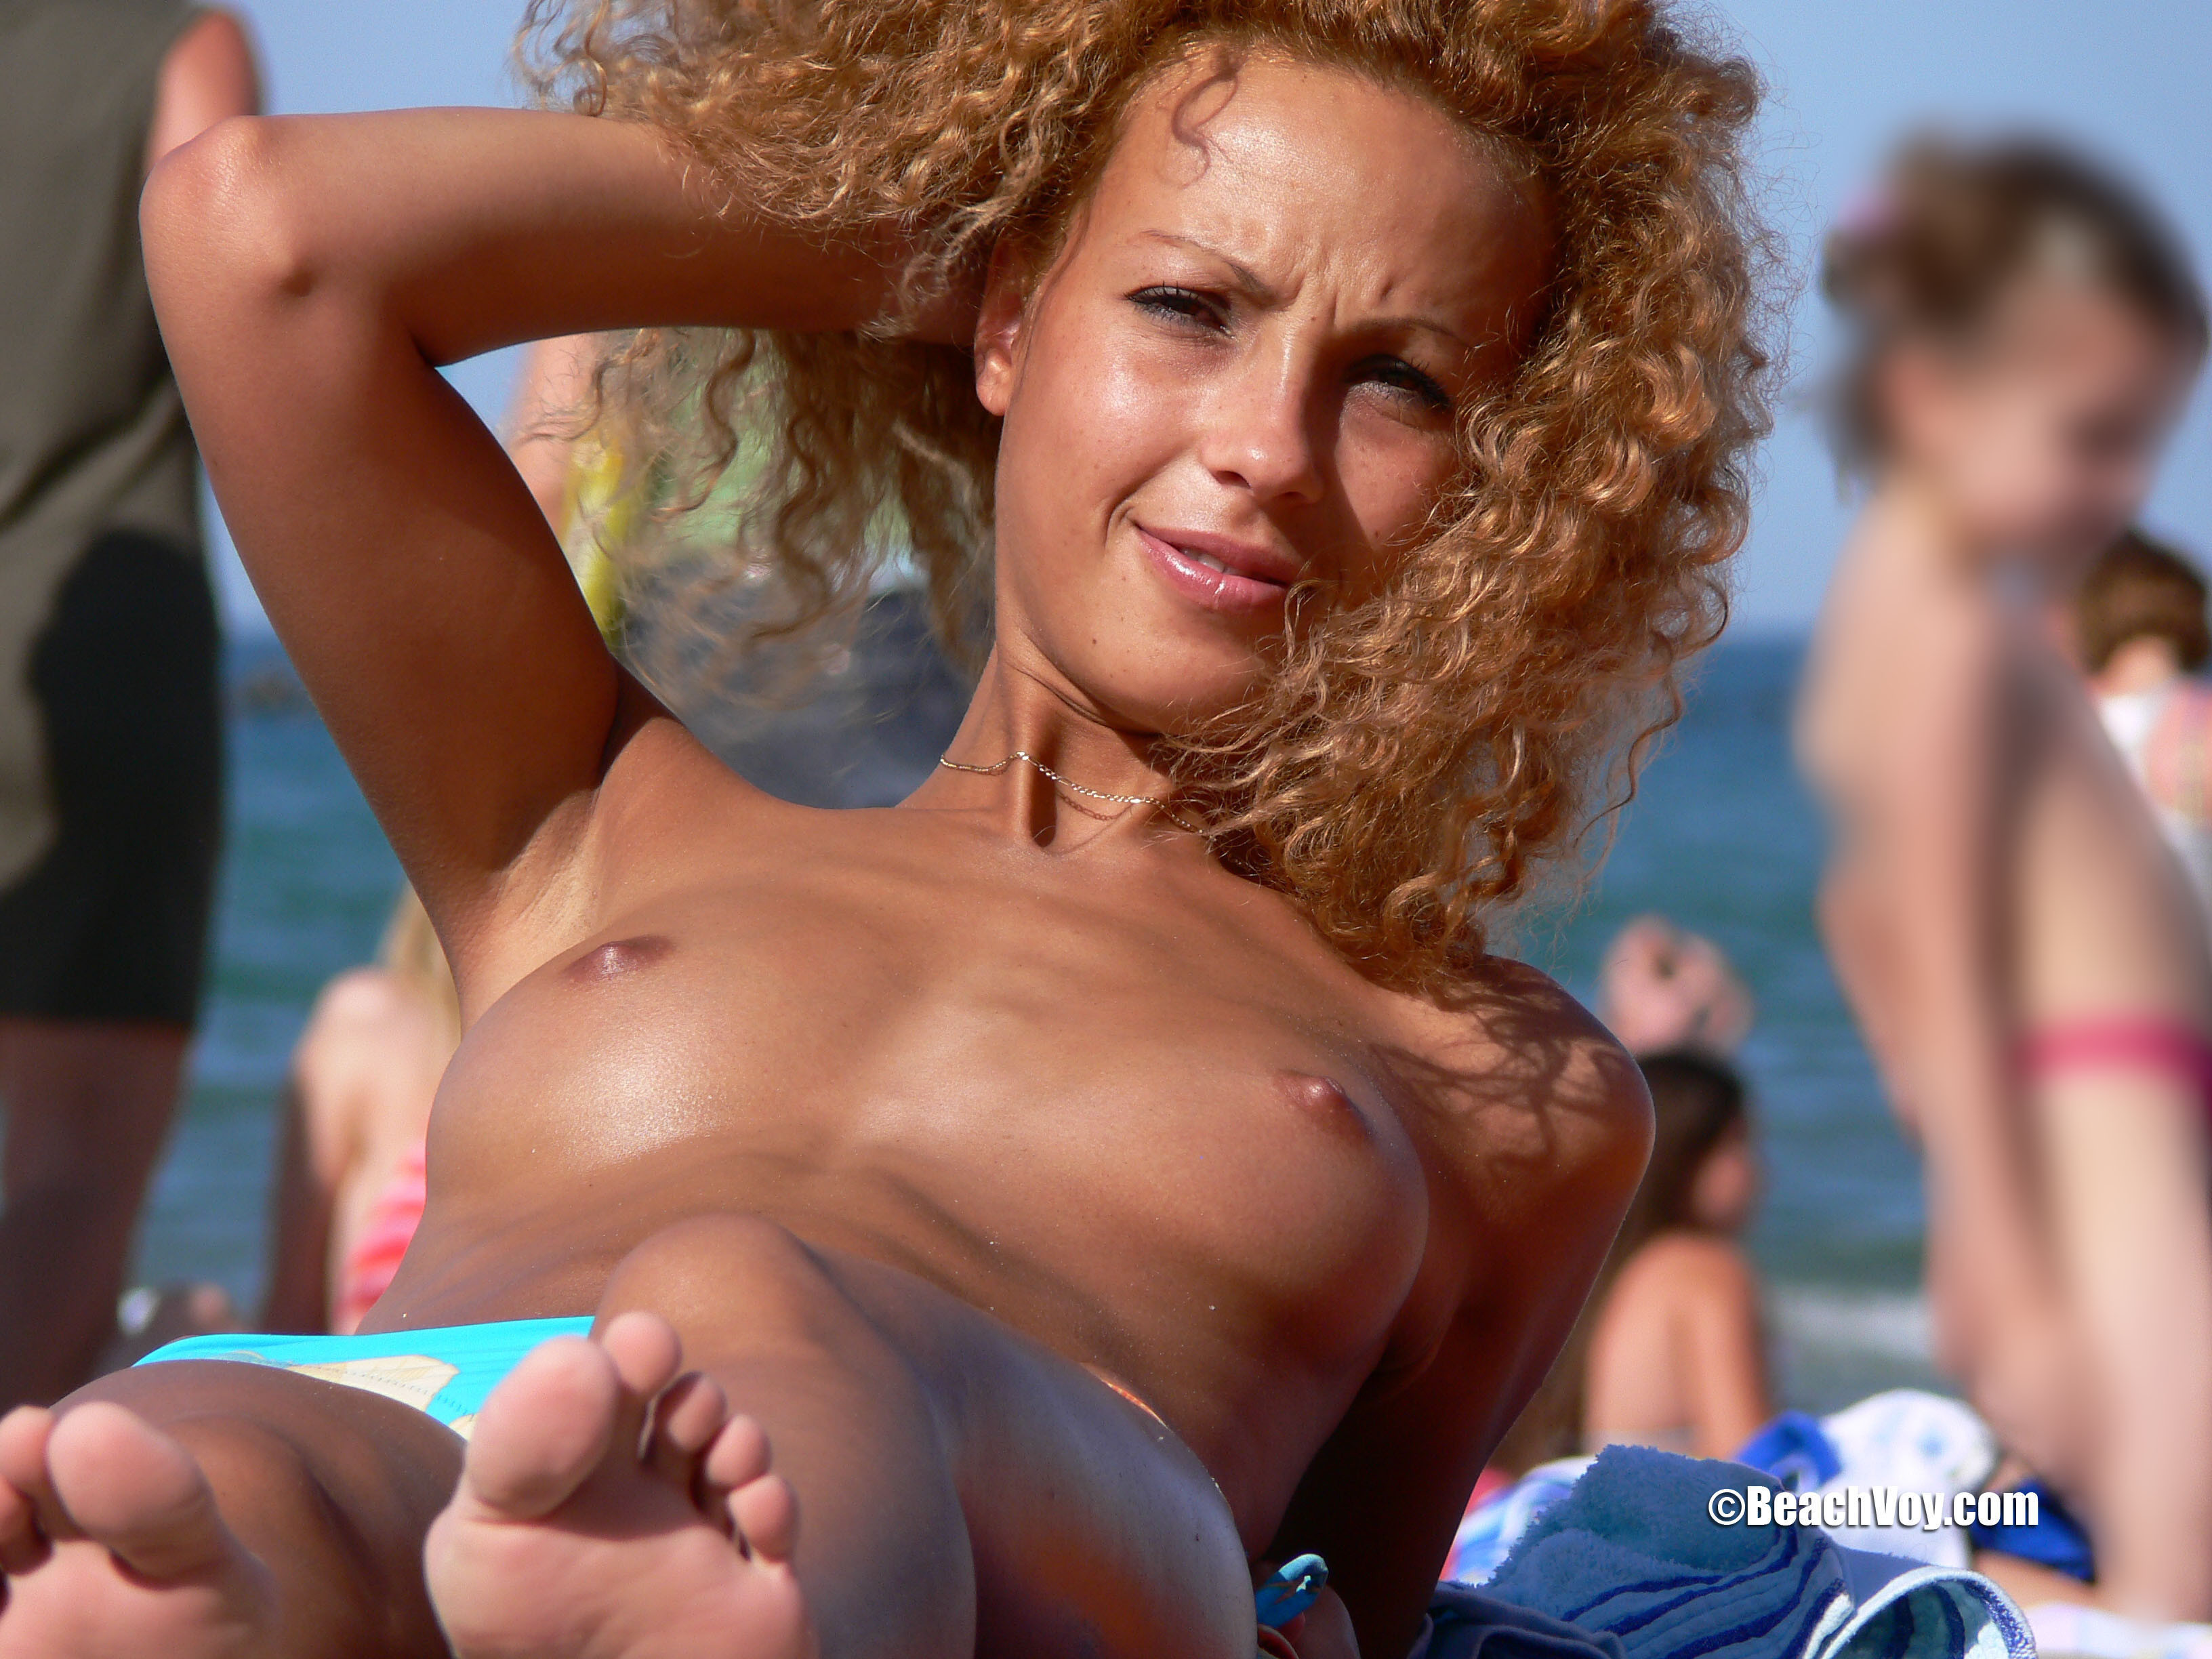 nudists-girls-boobs-beach-topless-mix-vol7-88